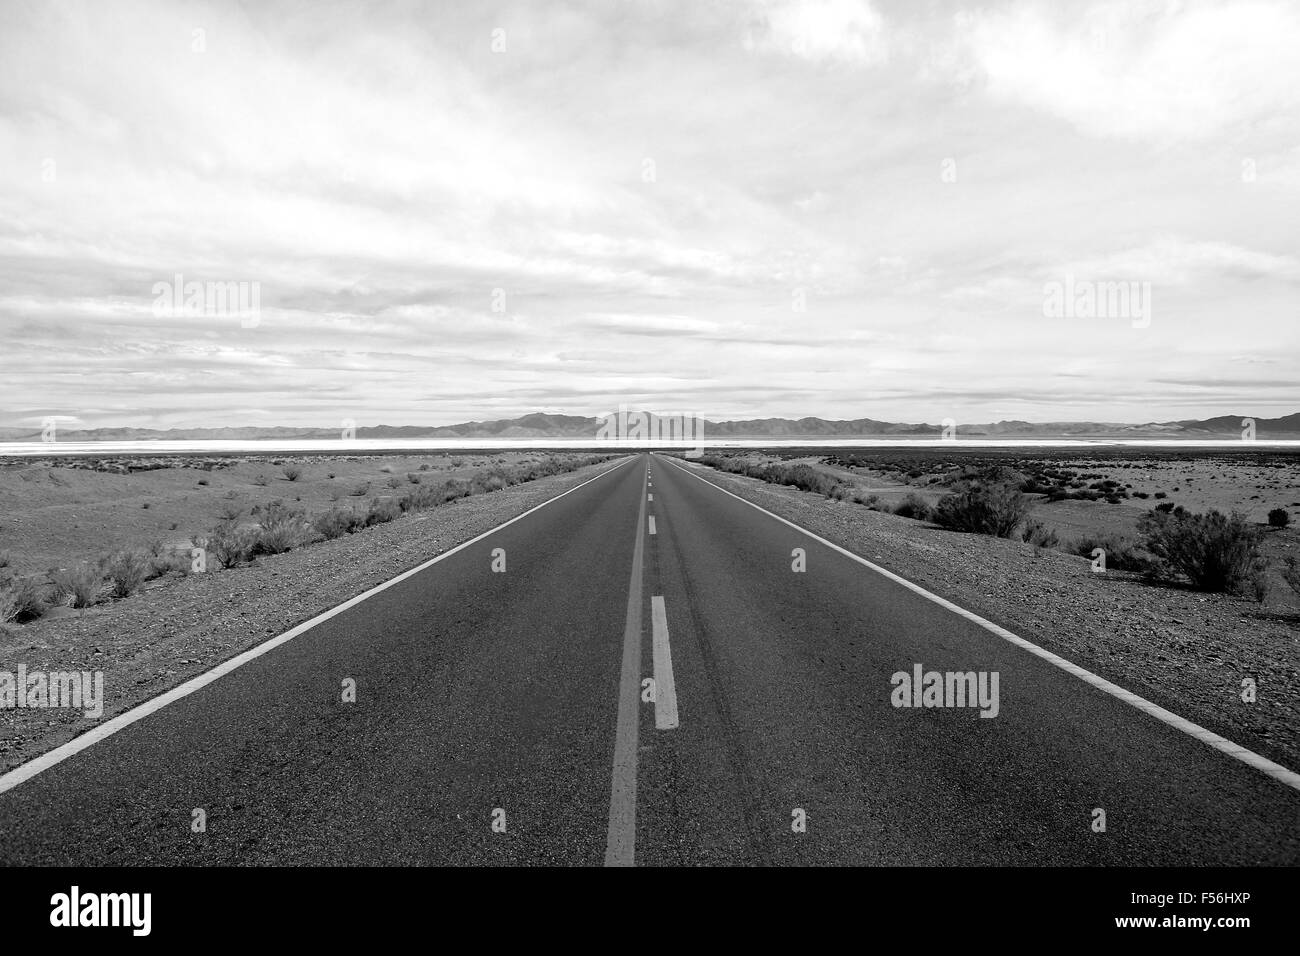 symmetric straight road to Salinas Grandes/ Big Salines picturesque Quebrada de Humahuaca mountains salt lake (black&white) - Stock Image